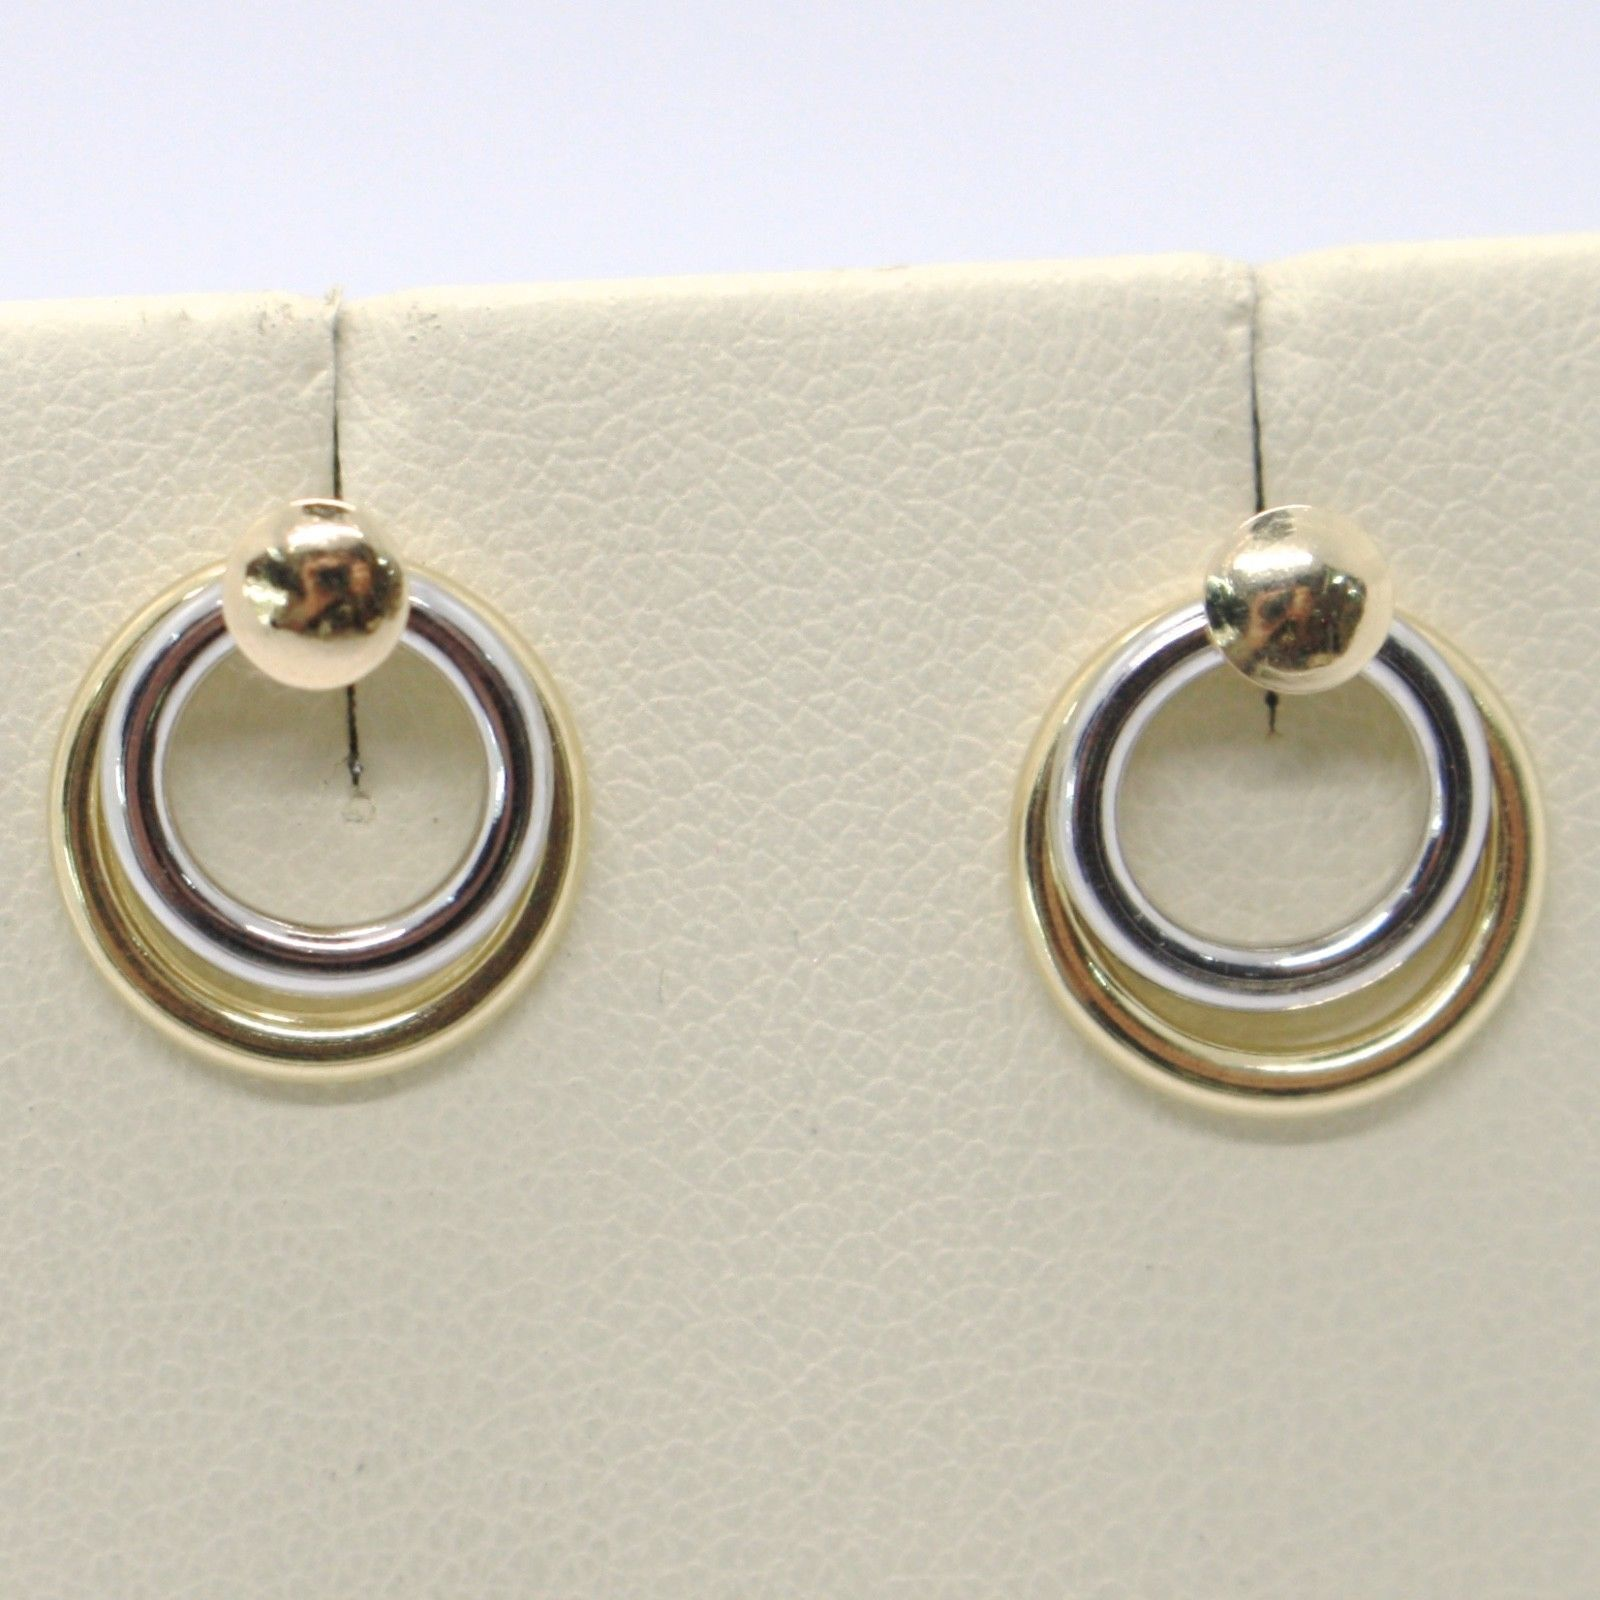 18K YELLOW WHITE GOLD PENDANT EARRINGS ALTERNATE DOUBLE CIRCLE, MADE IN ITALY